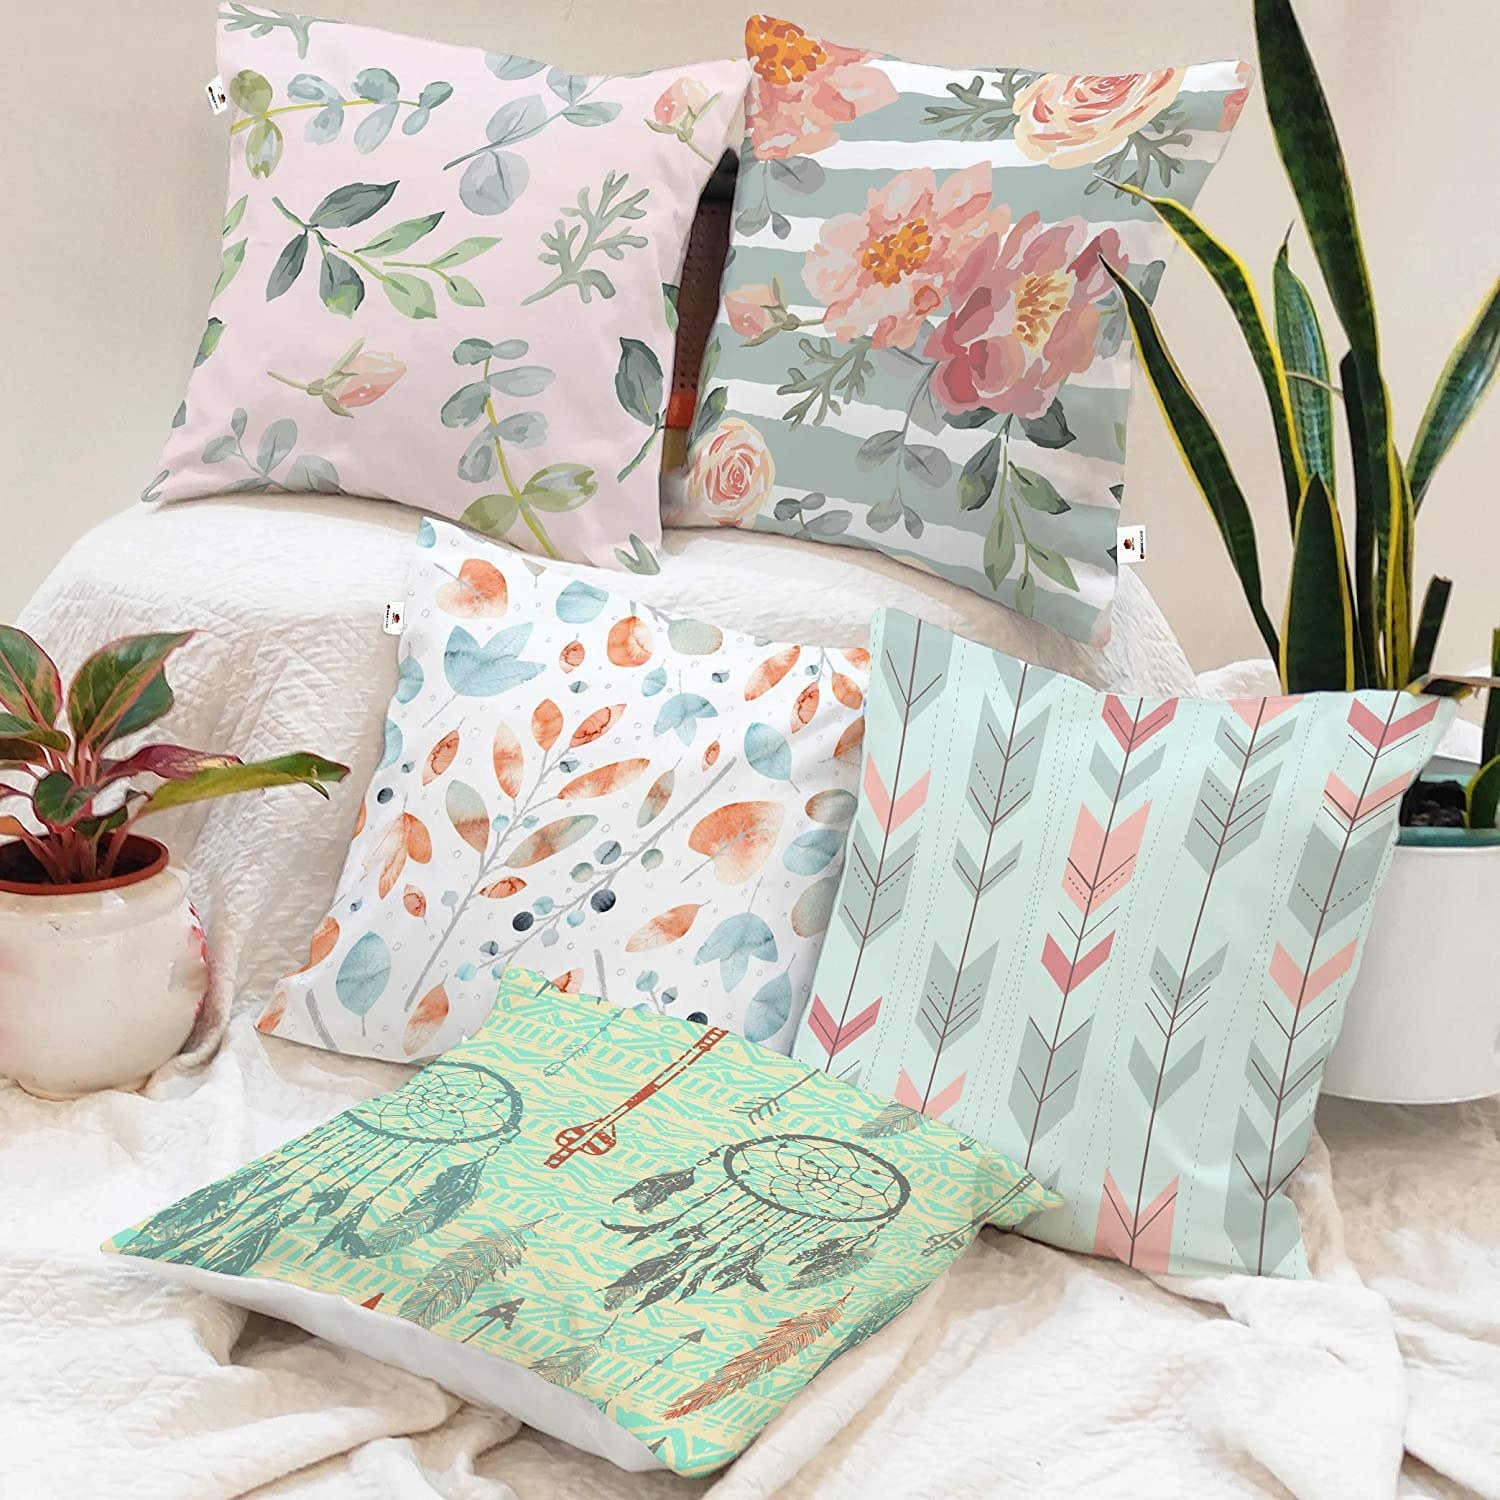 Colorful cushions on a white blanket